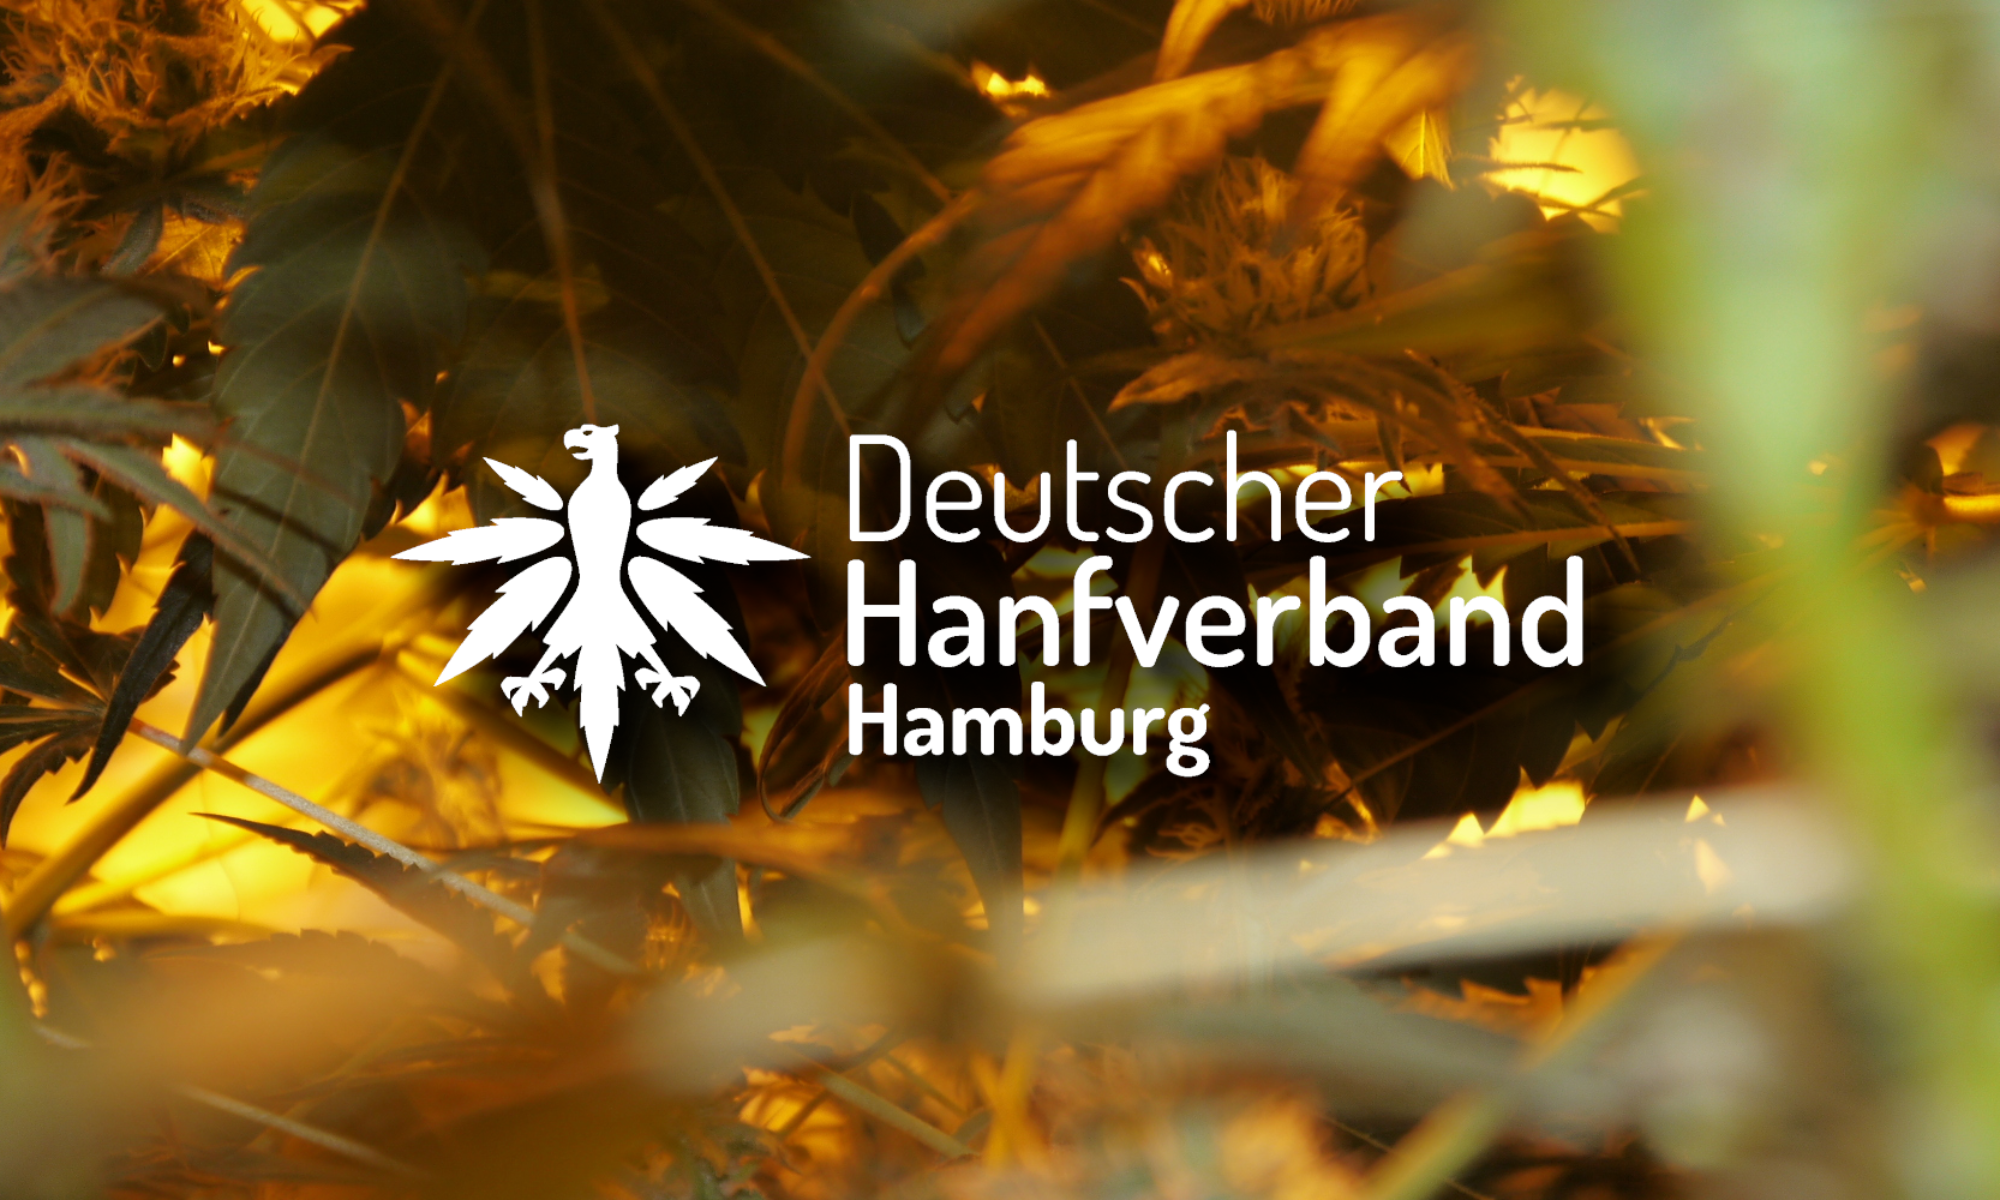 Hanfverband Hamburg